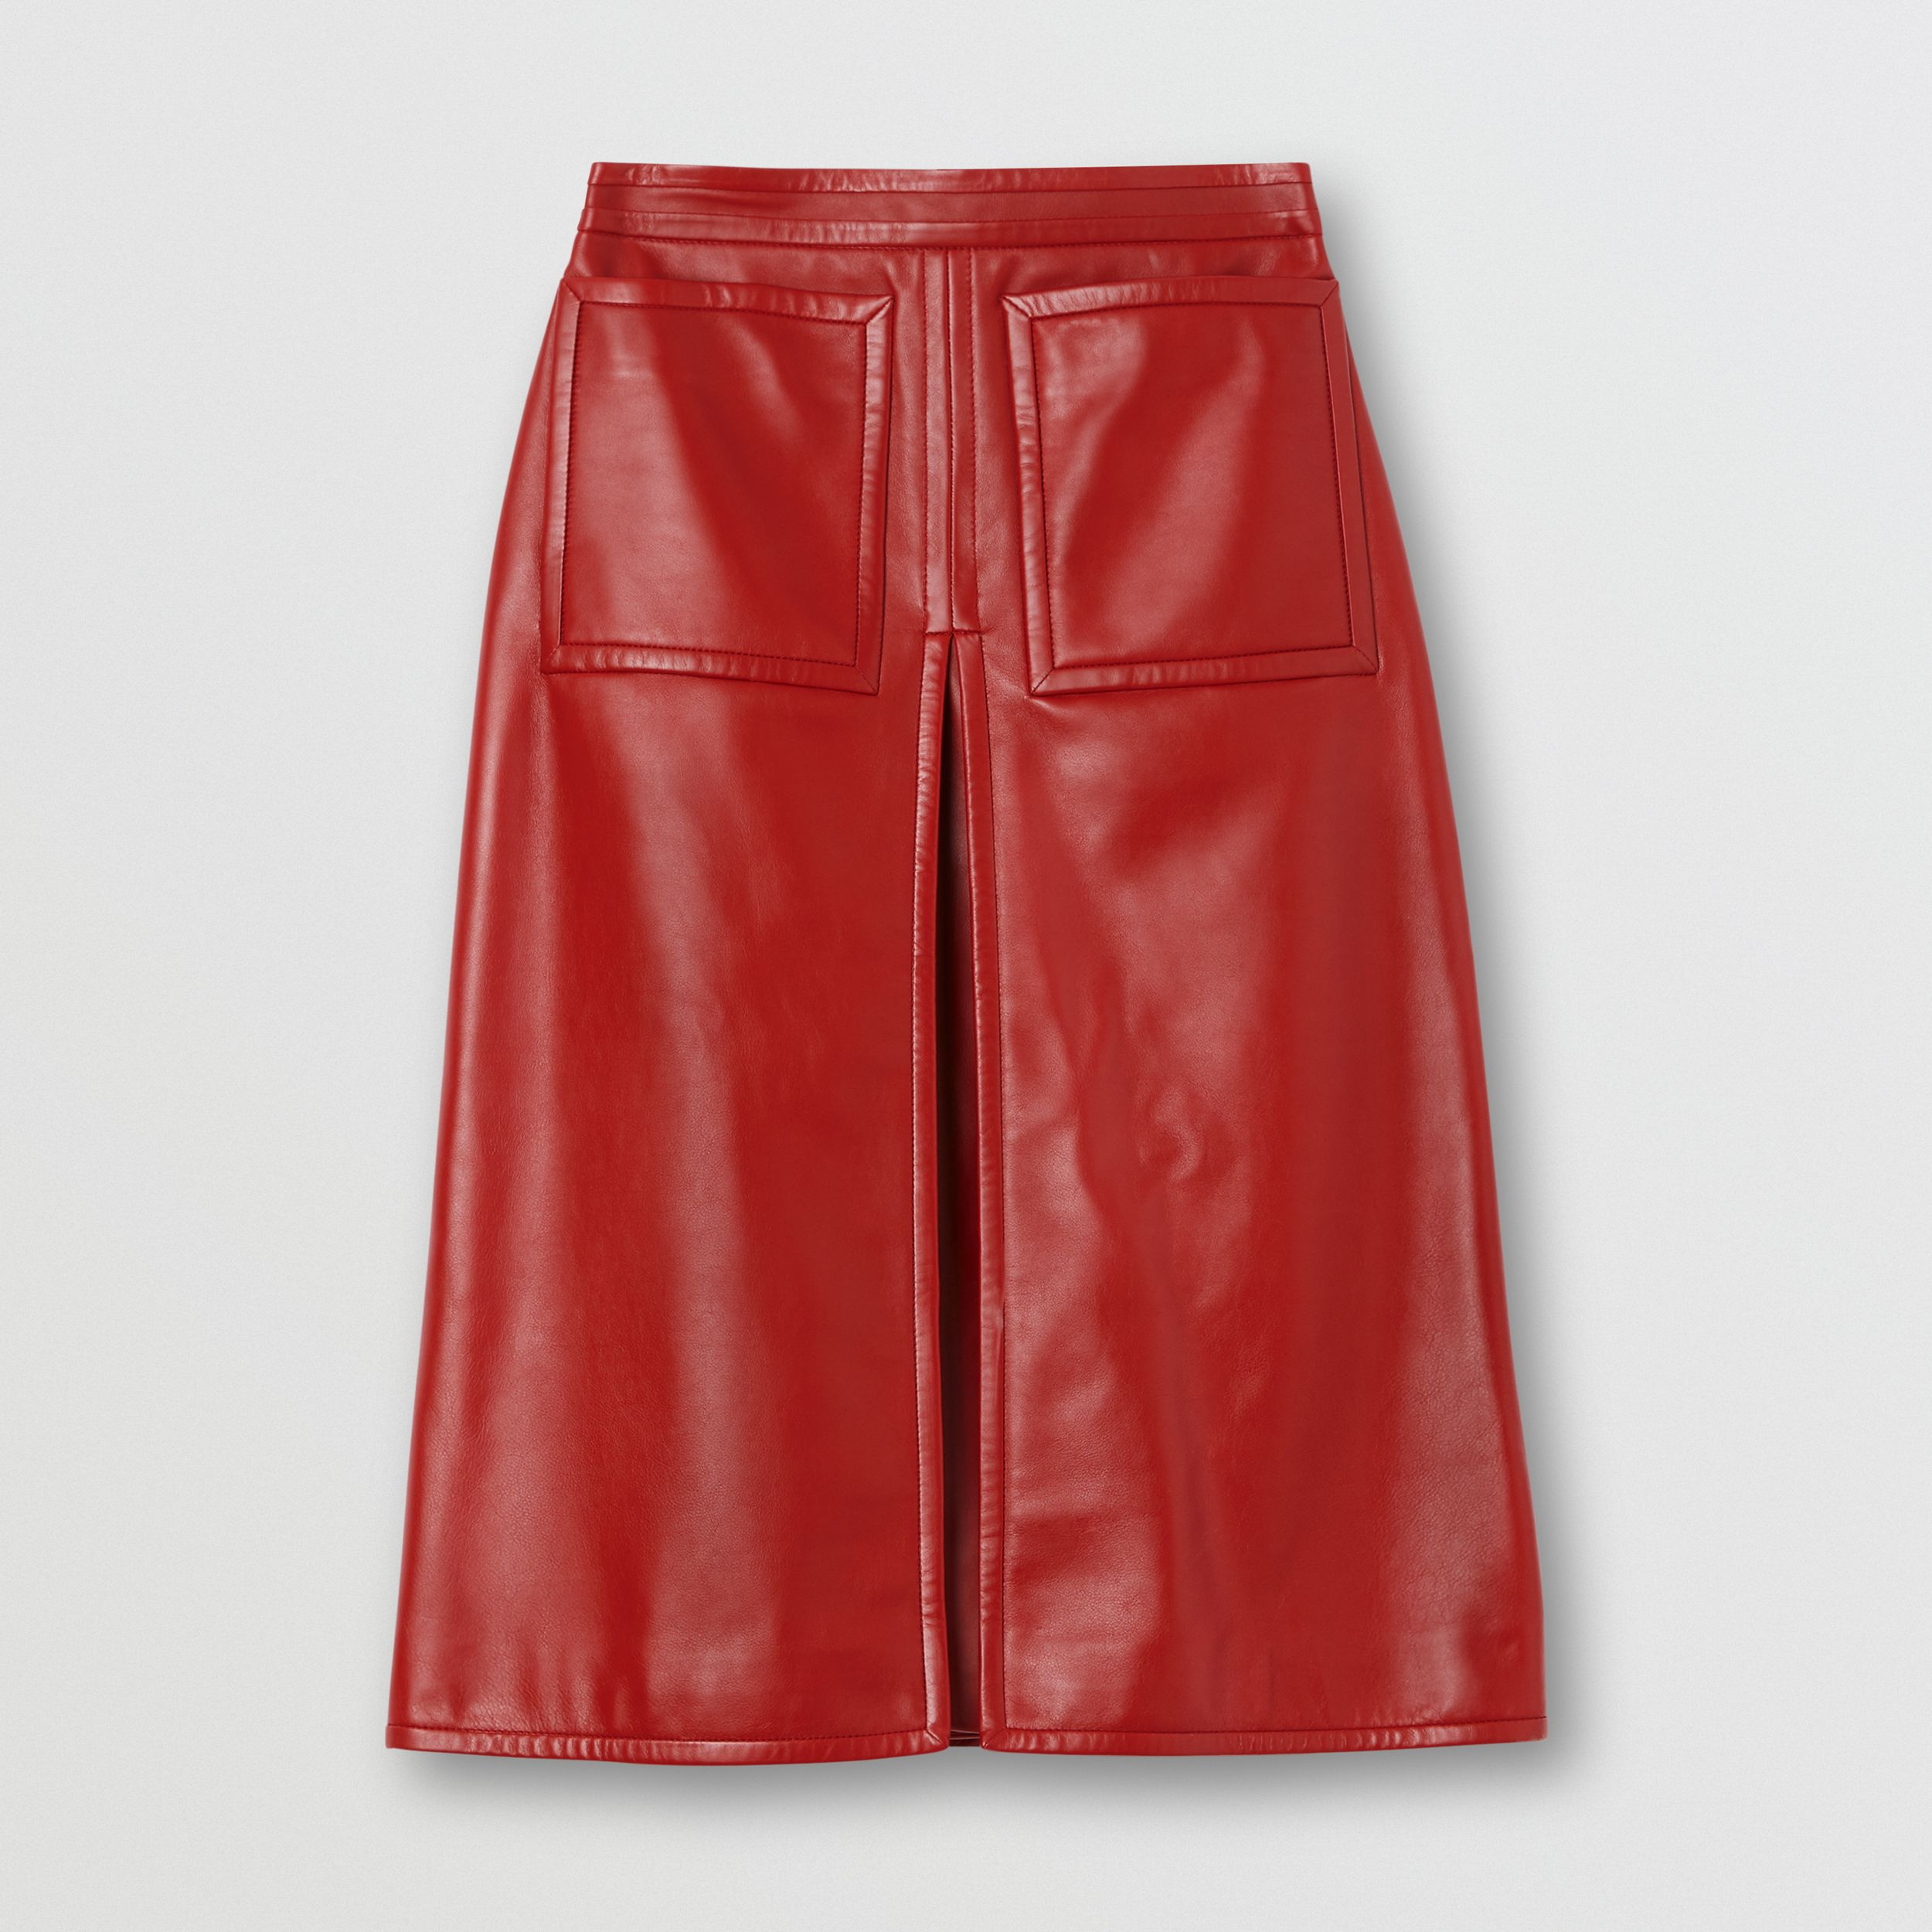 Box-pleat Detail Leather A-line Skirt in Dark Carmine - Women | Burberry - 4